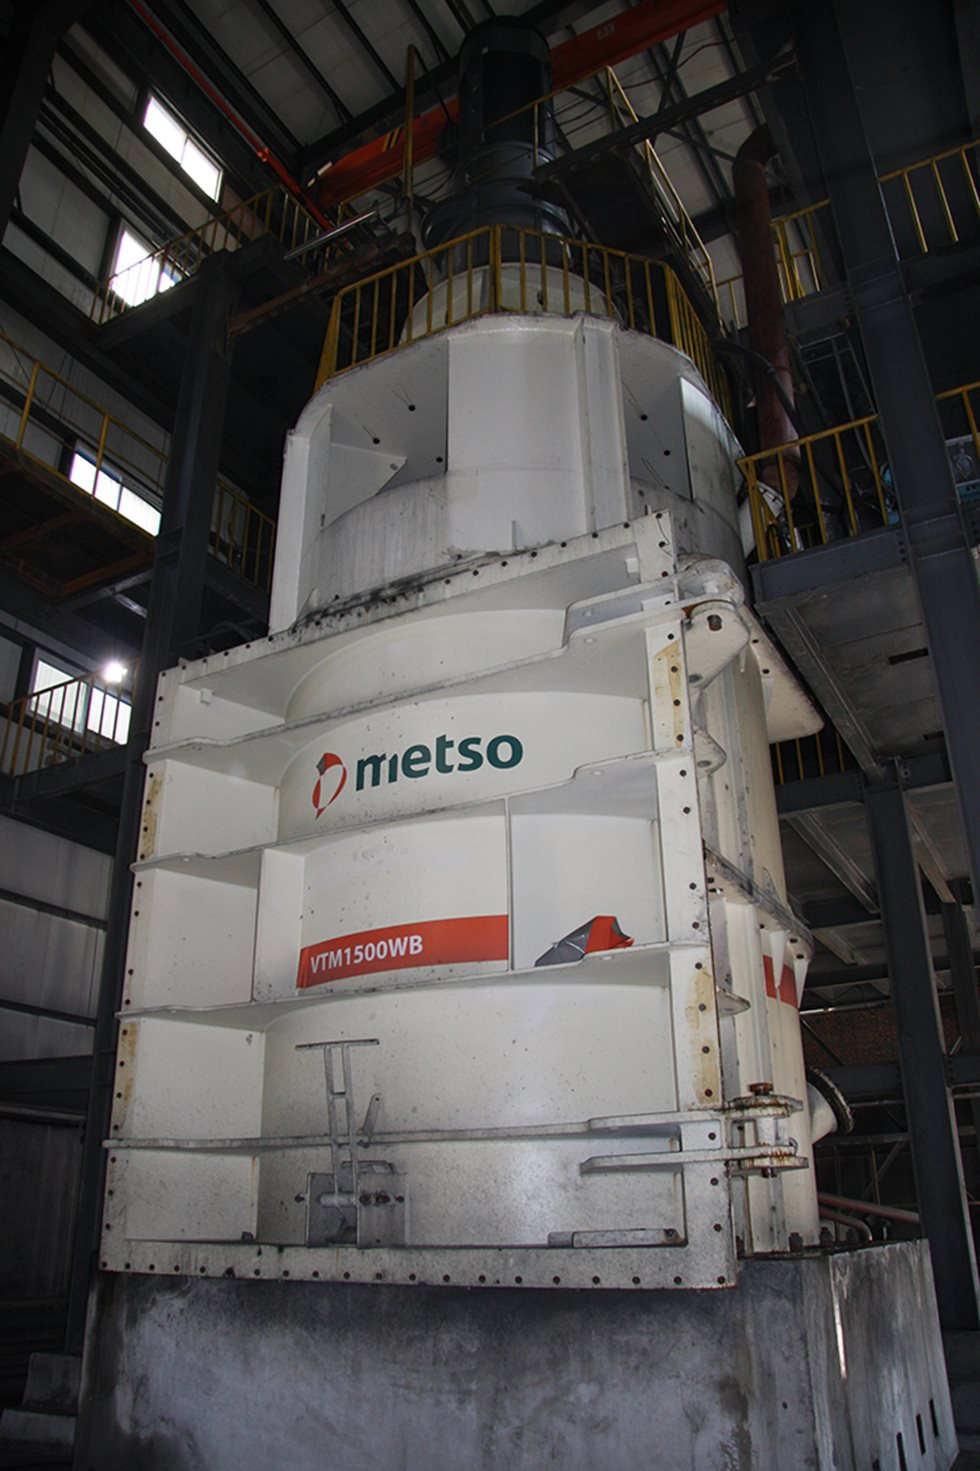 Vertimill 500 installed at Miaogou mine site.